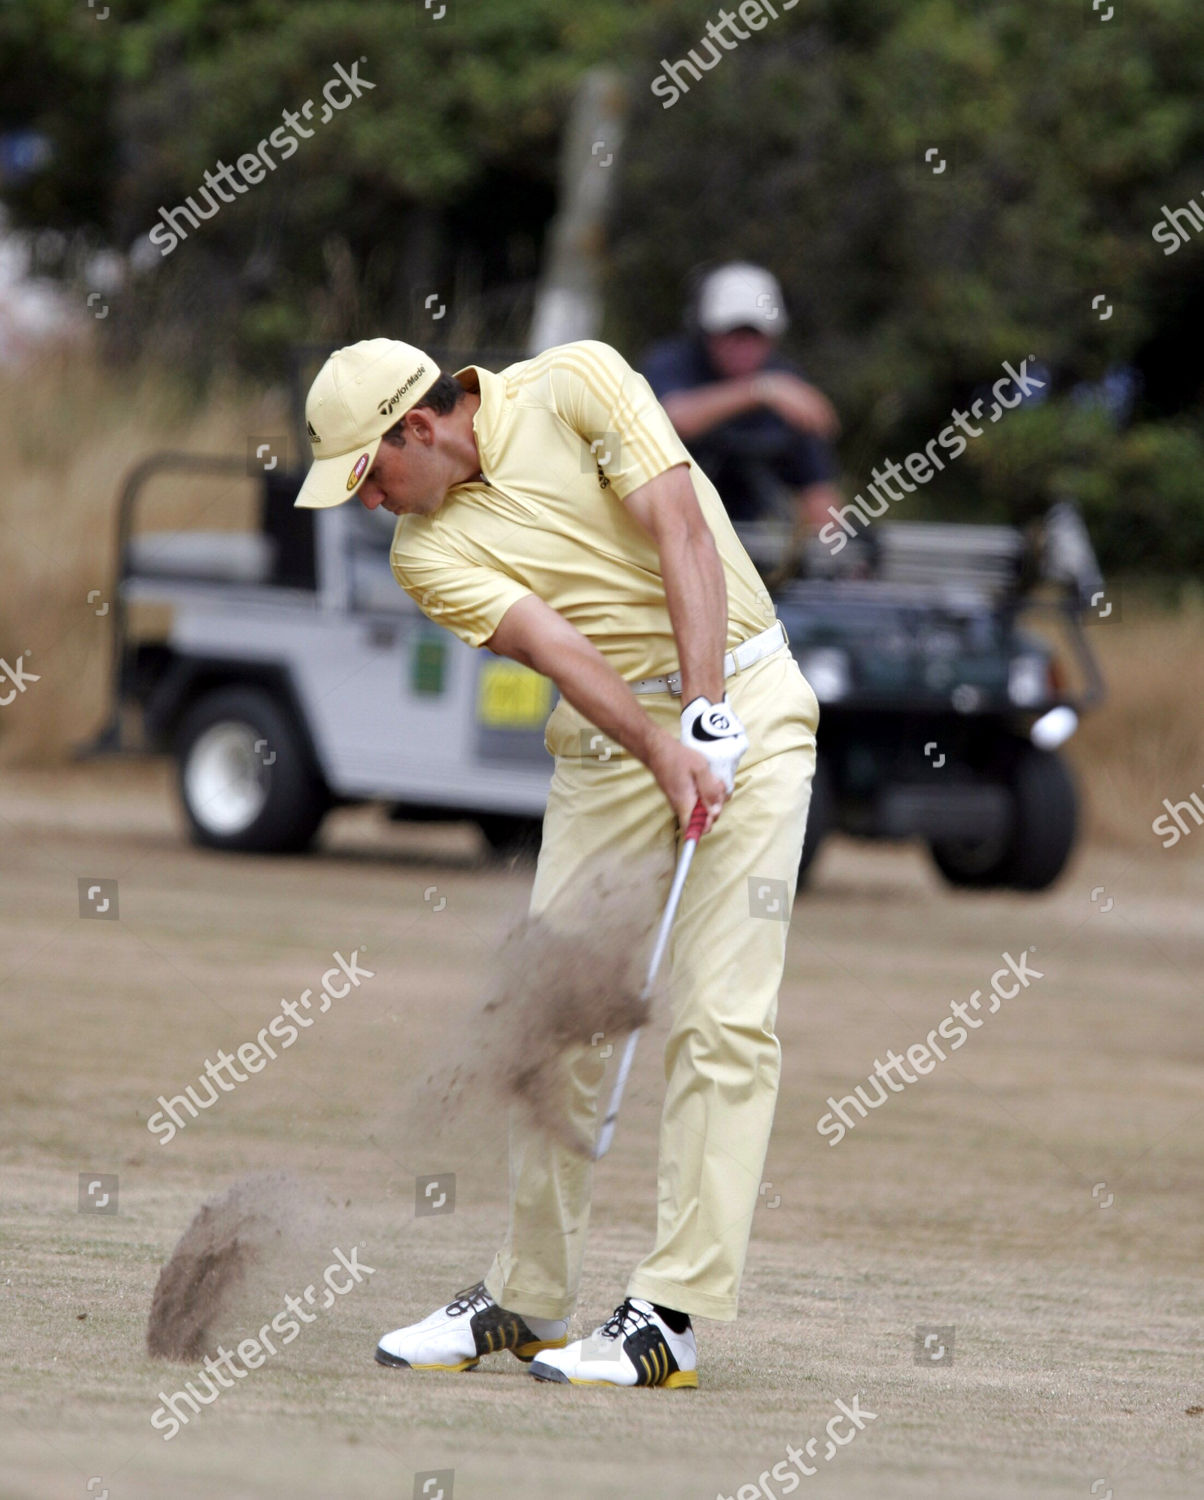 The Open Golf Championship At Royal Liverpool Club Hoylake Wirral Britain Stock Image By Charles Knight For Editorial Use 23 Jul 2006